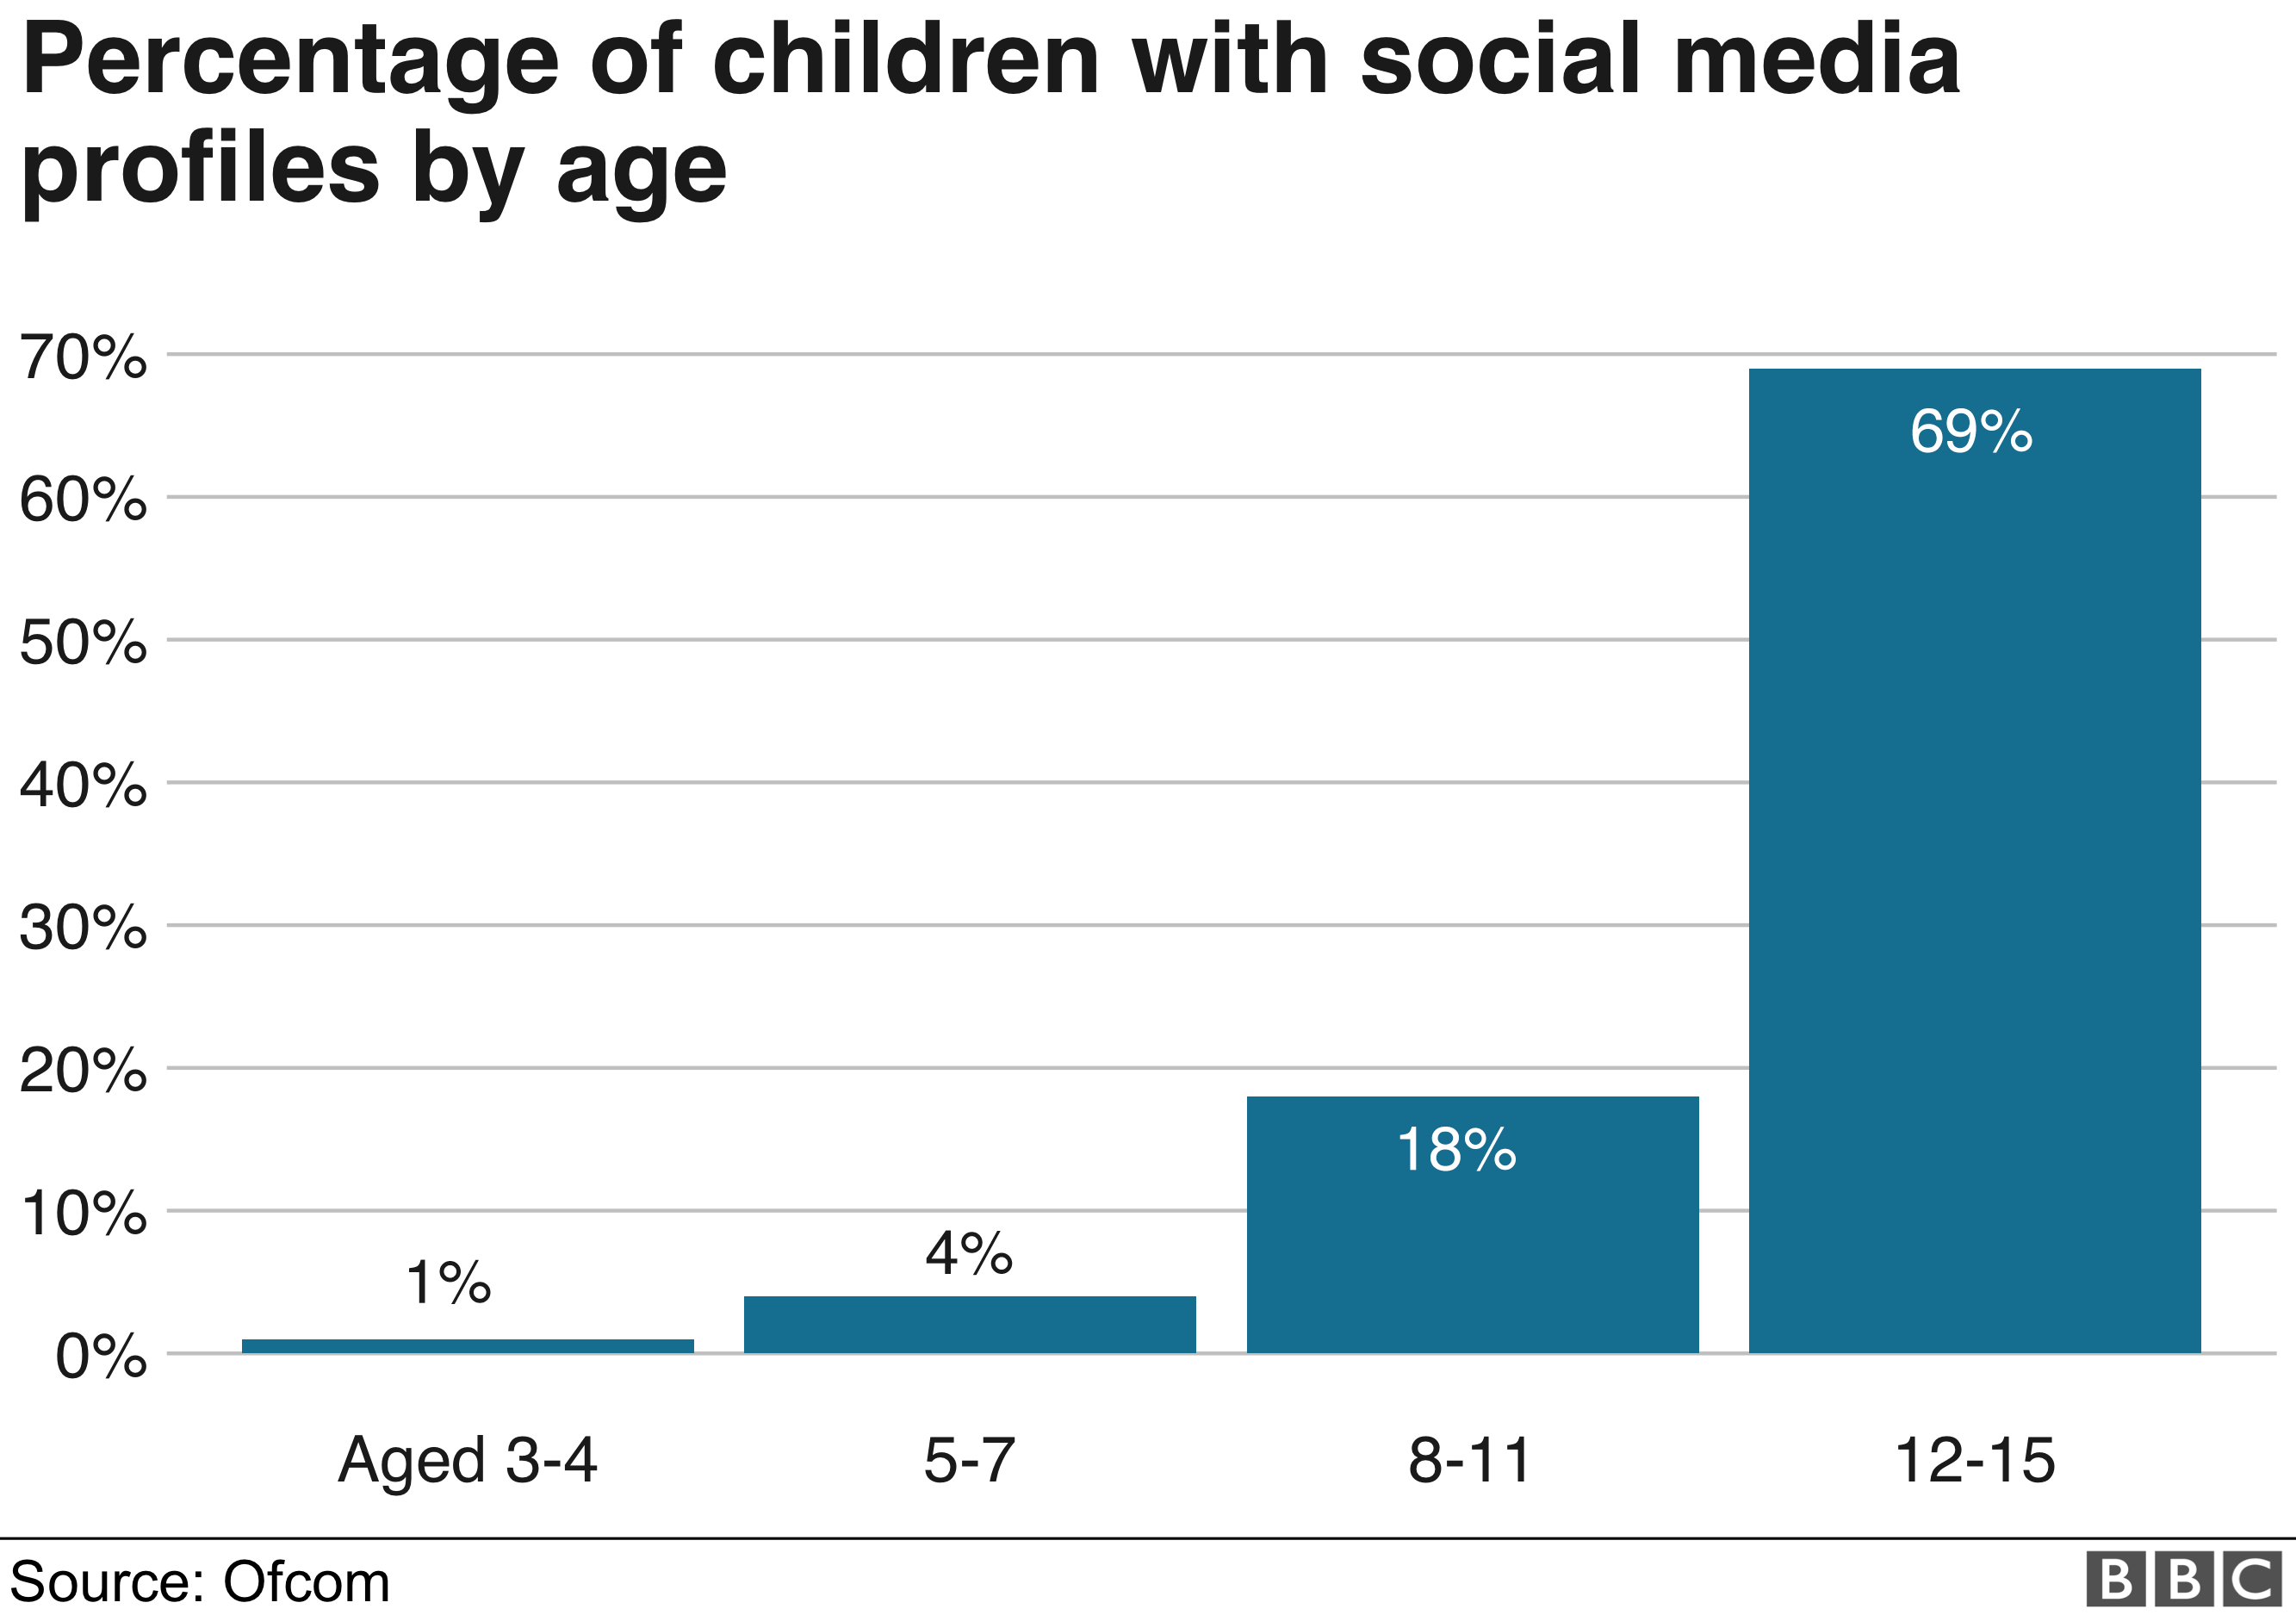 Ofcom chart showing that 89% of children aged 12-15 have a social media account